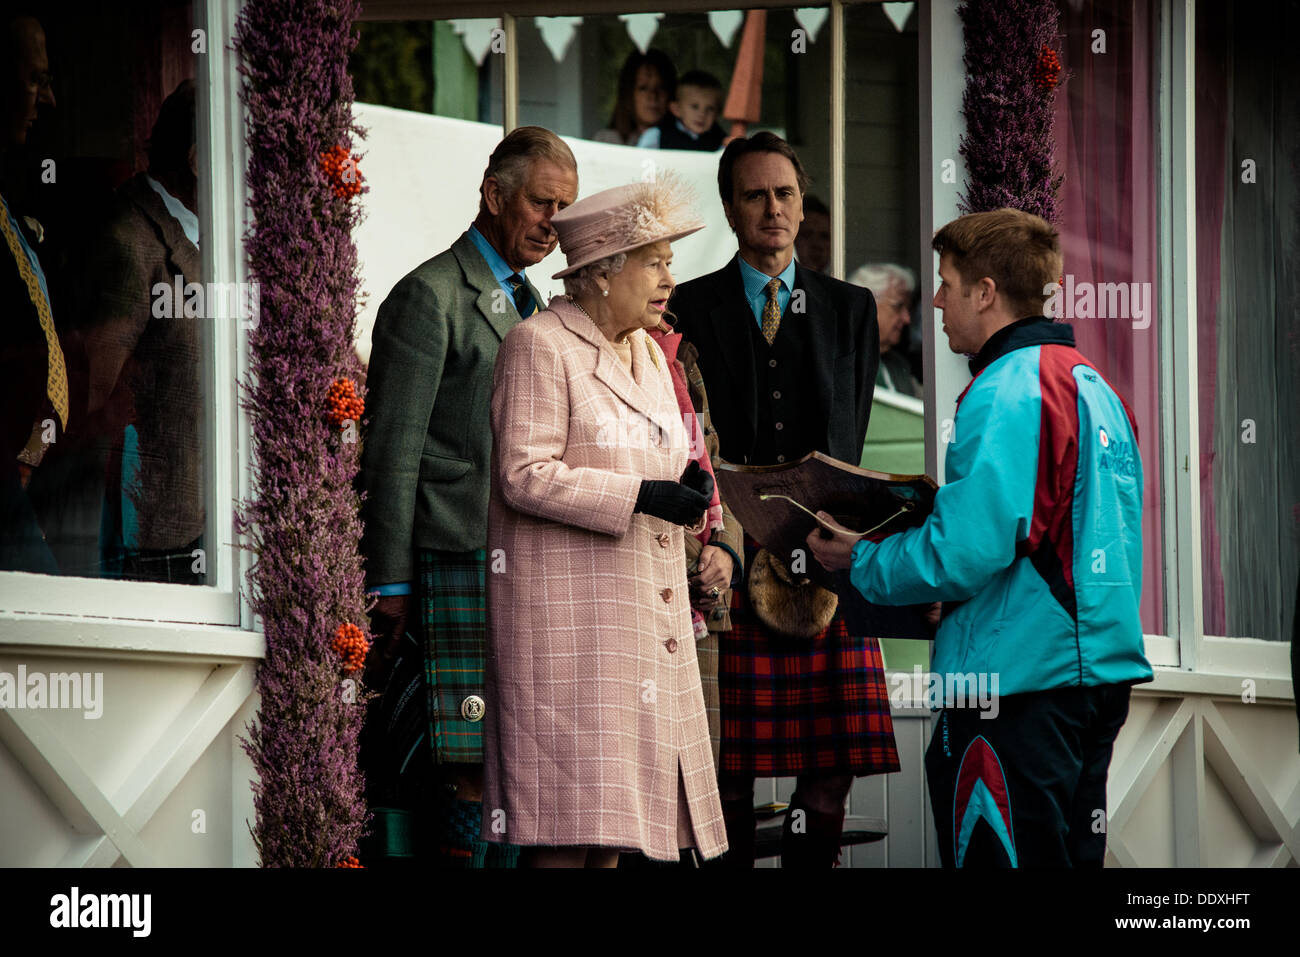 Braemar, Scotland, United Kingdom. September 7th, 2013: H.M. The Queen awards the winner in the relay race  during the annual Braemer Highland Games at The Princess Royal and Duke of Fife Memorial Park - Stock Image